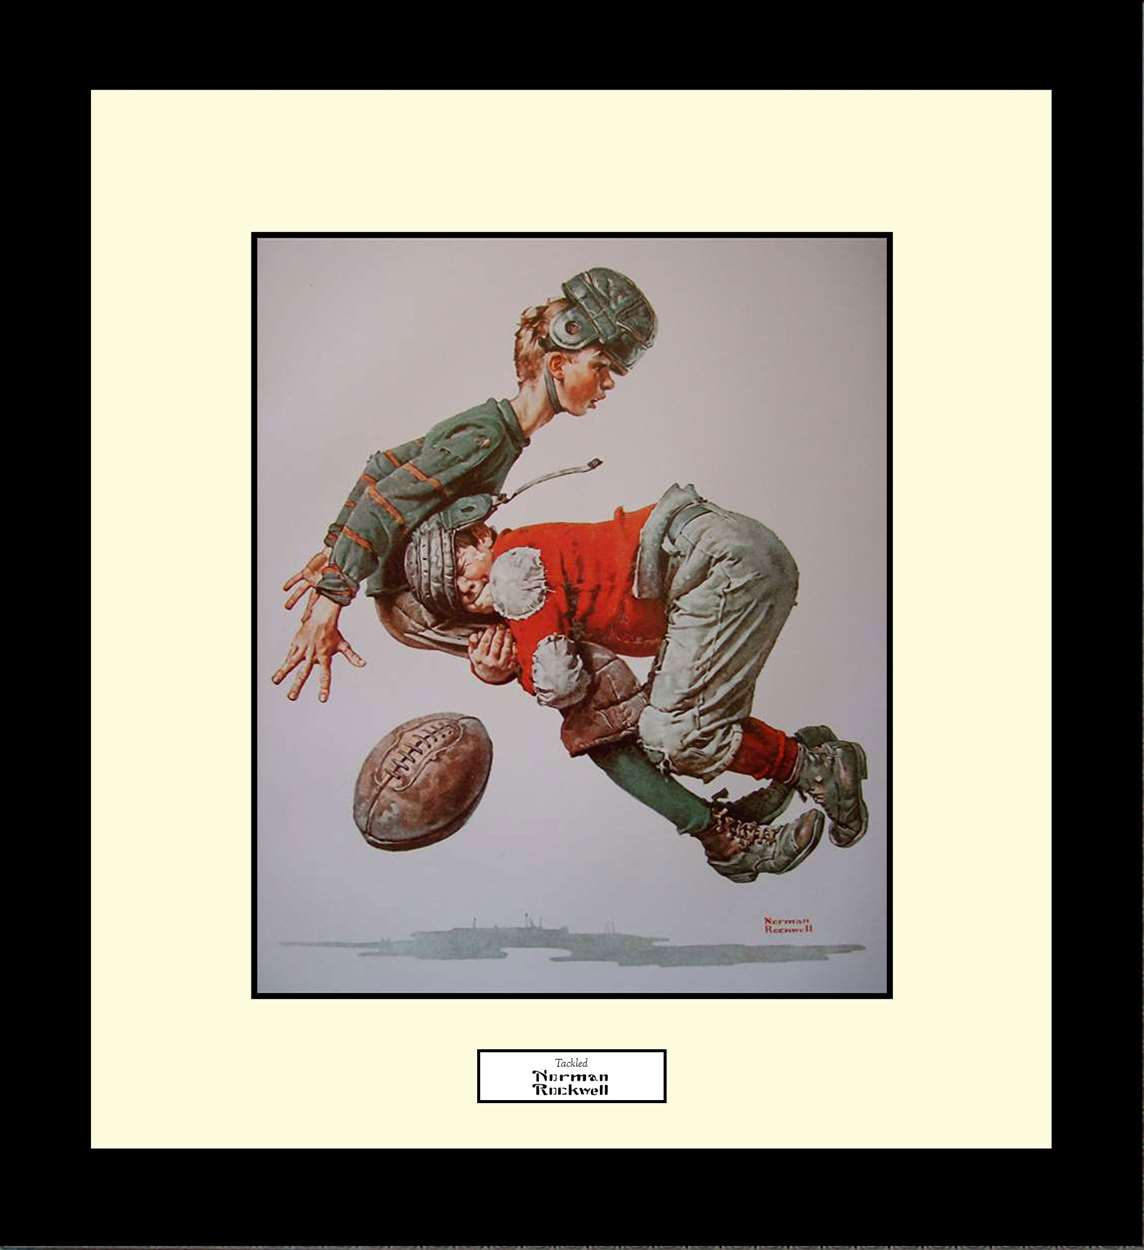 Tackled, Norman Rockwell, 16x18